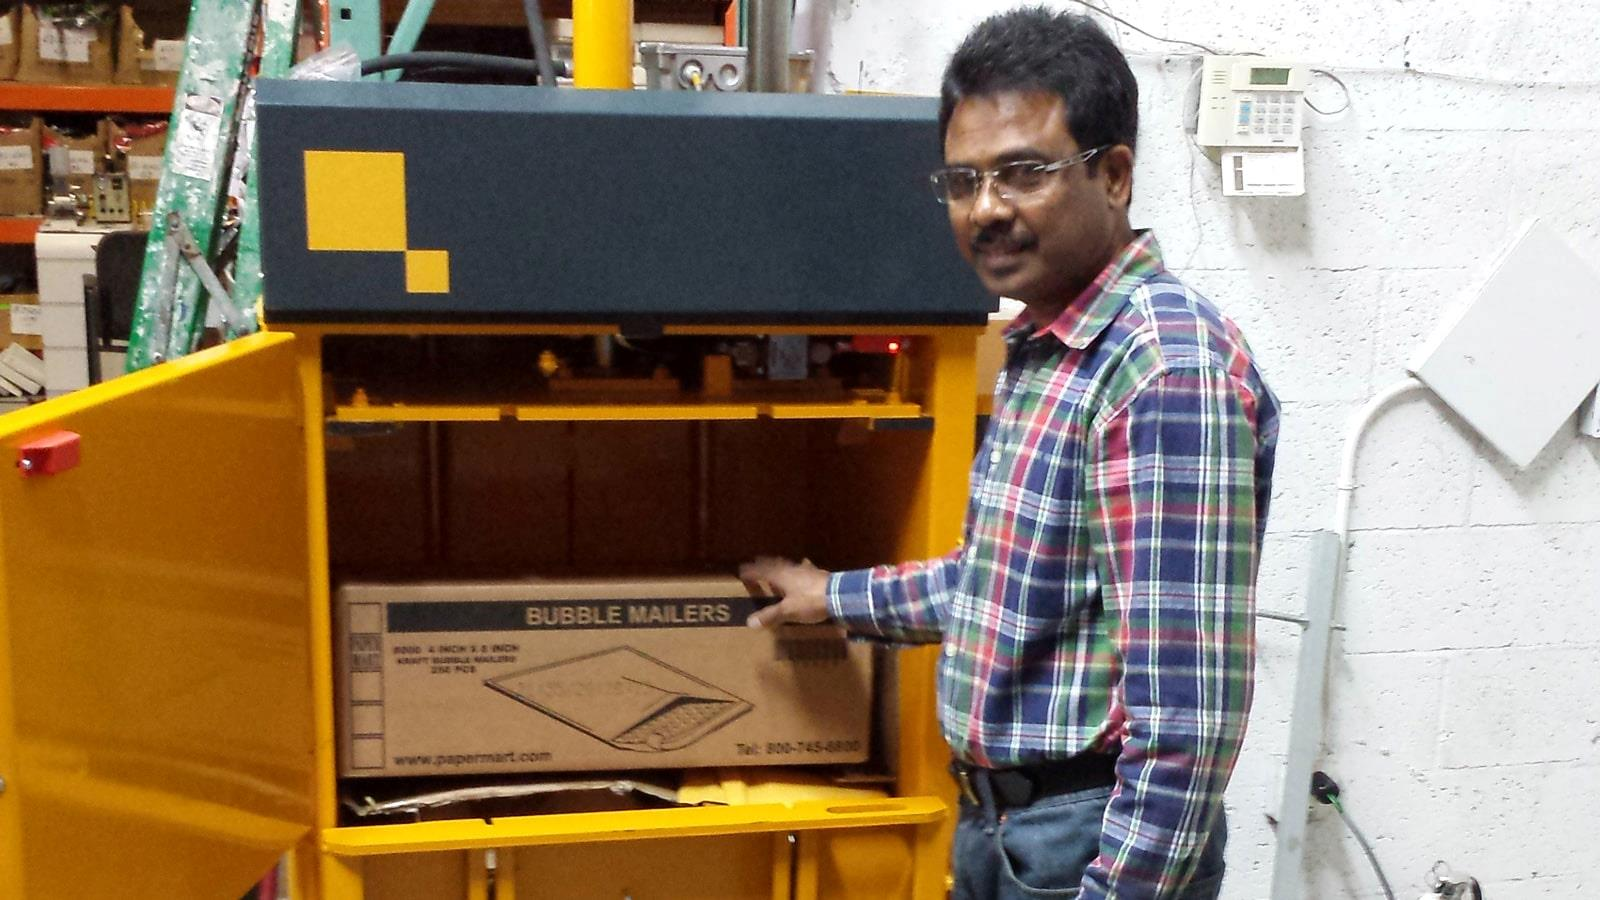 Employee at Marshall Wallets fills cardboard into small Bramidan baler